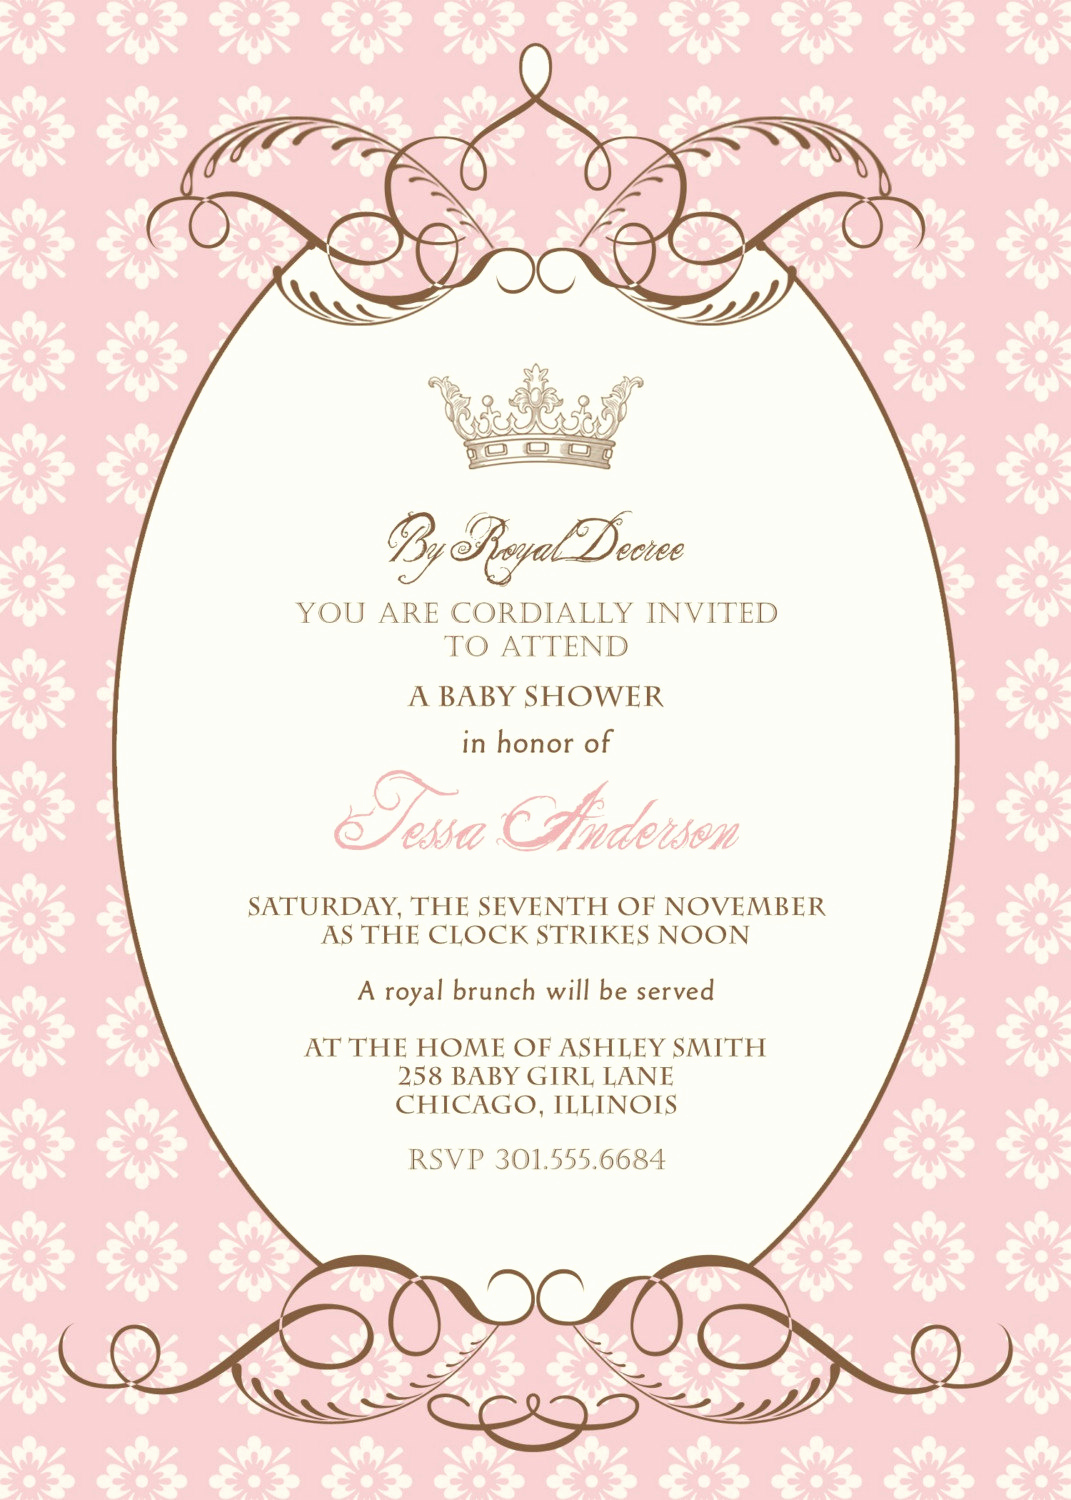 Royal Baby Shower Invitation Templates Inspirational Royal Decree Baby Shower Invitation